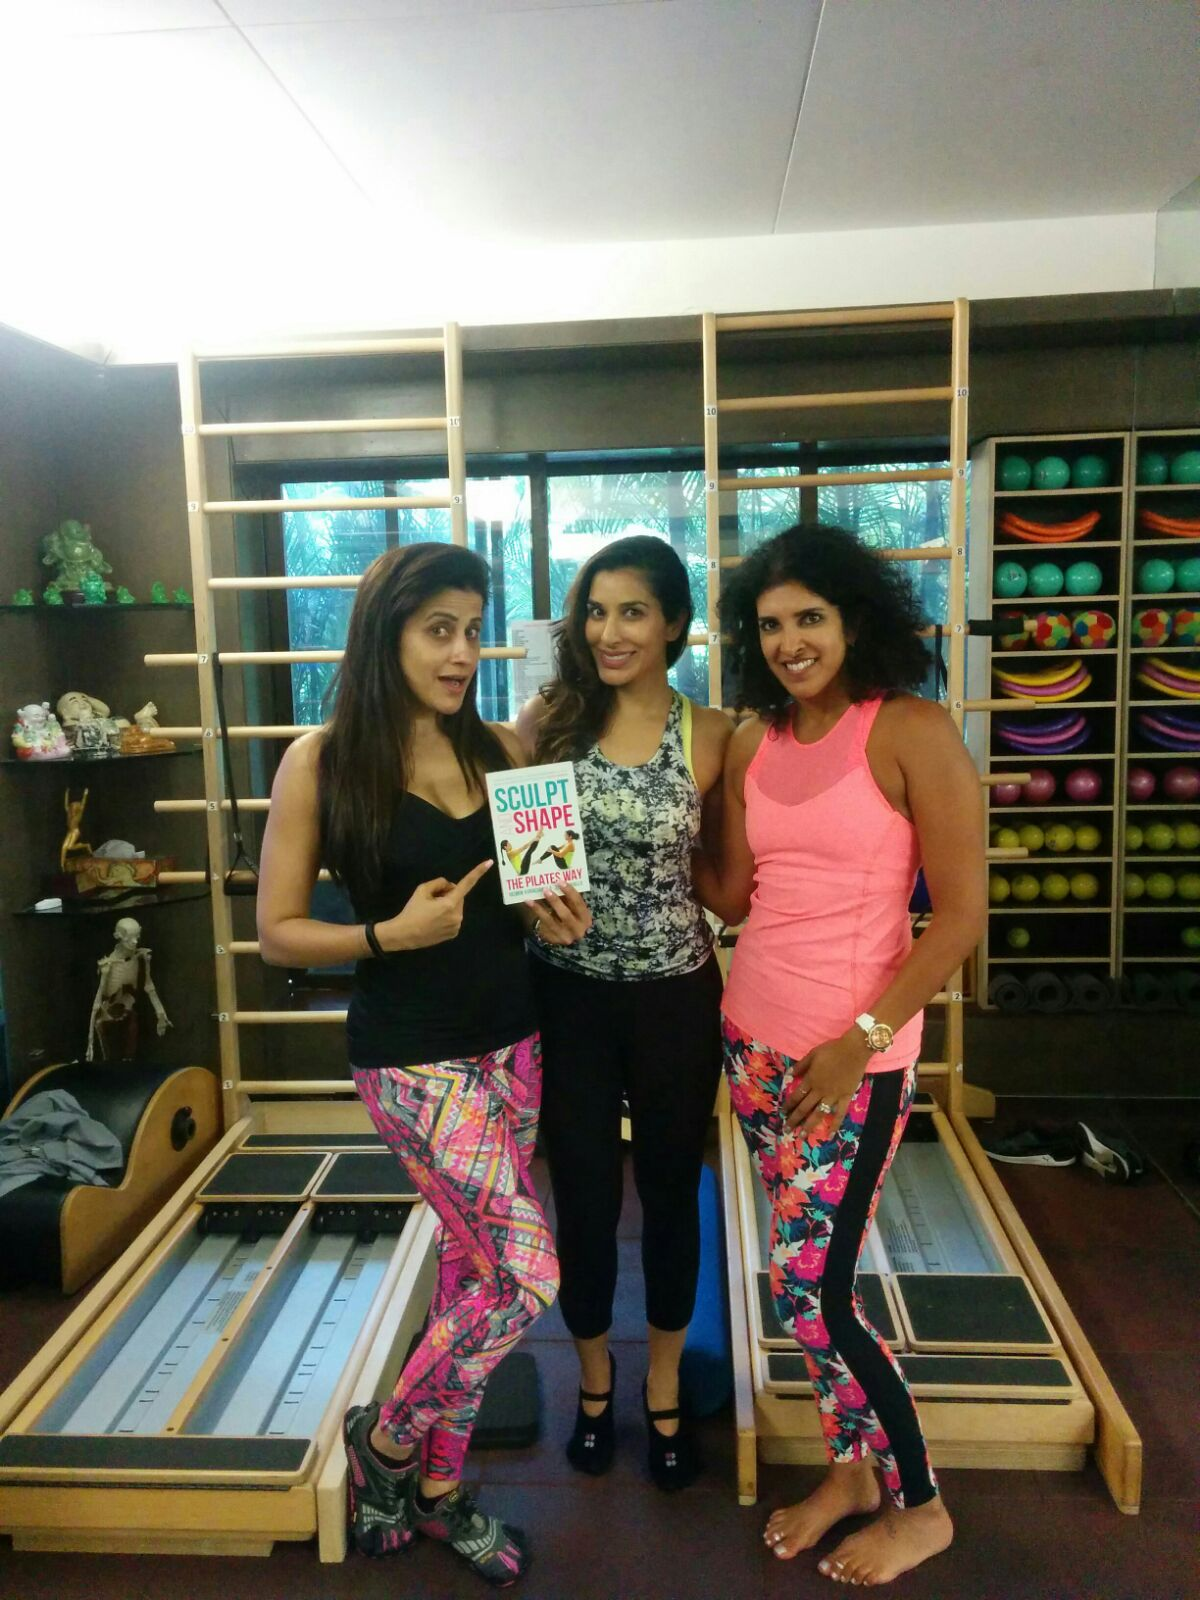 """Sophia Choudry     """"As a kid back in London I used to see my mum's passion for Pilates. In fact she sent me for my first class when I was just 16. Fitness has always been an important part of my lifestyle, however a couple of years ago I suffered from a slipped disc in my neck and a year later in my lower back. That was the end of my weight training and yoga for a while. What saved me was Pilates with Yasmin Karachiwala so much so that I was able to take part in the extremely physically challenging Jhalak Dikhlaja performing stunts I never thought I would! Pilates gives you so much body awareness, it really helps you to connect your body, mind and soul, it gives you tremendous core strength and flexibility and it's extremely challenging."""""""